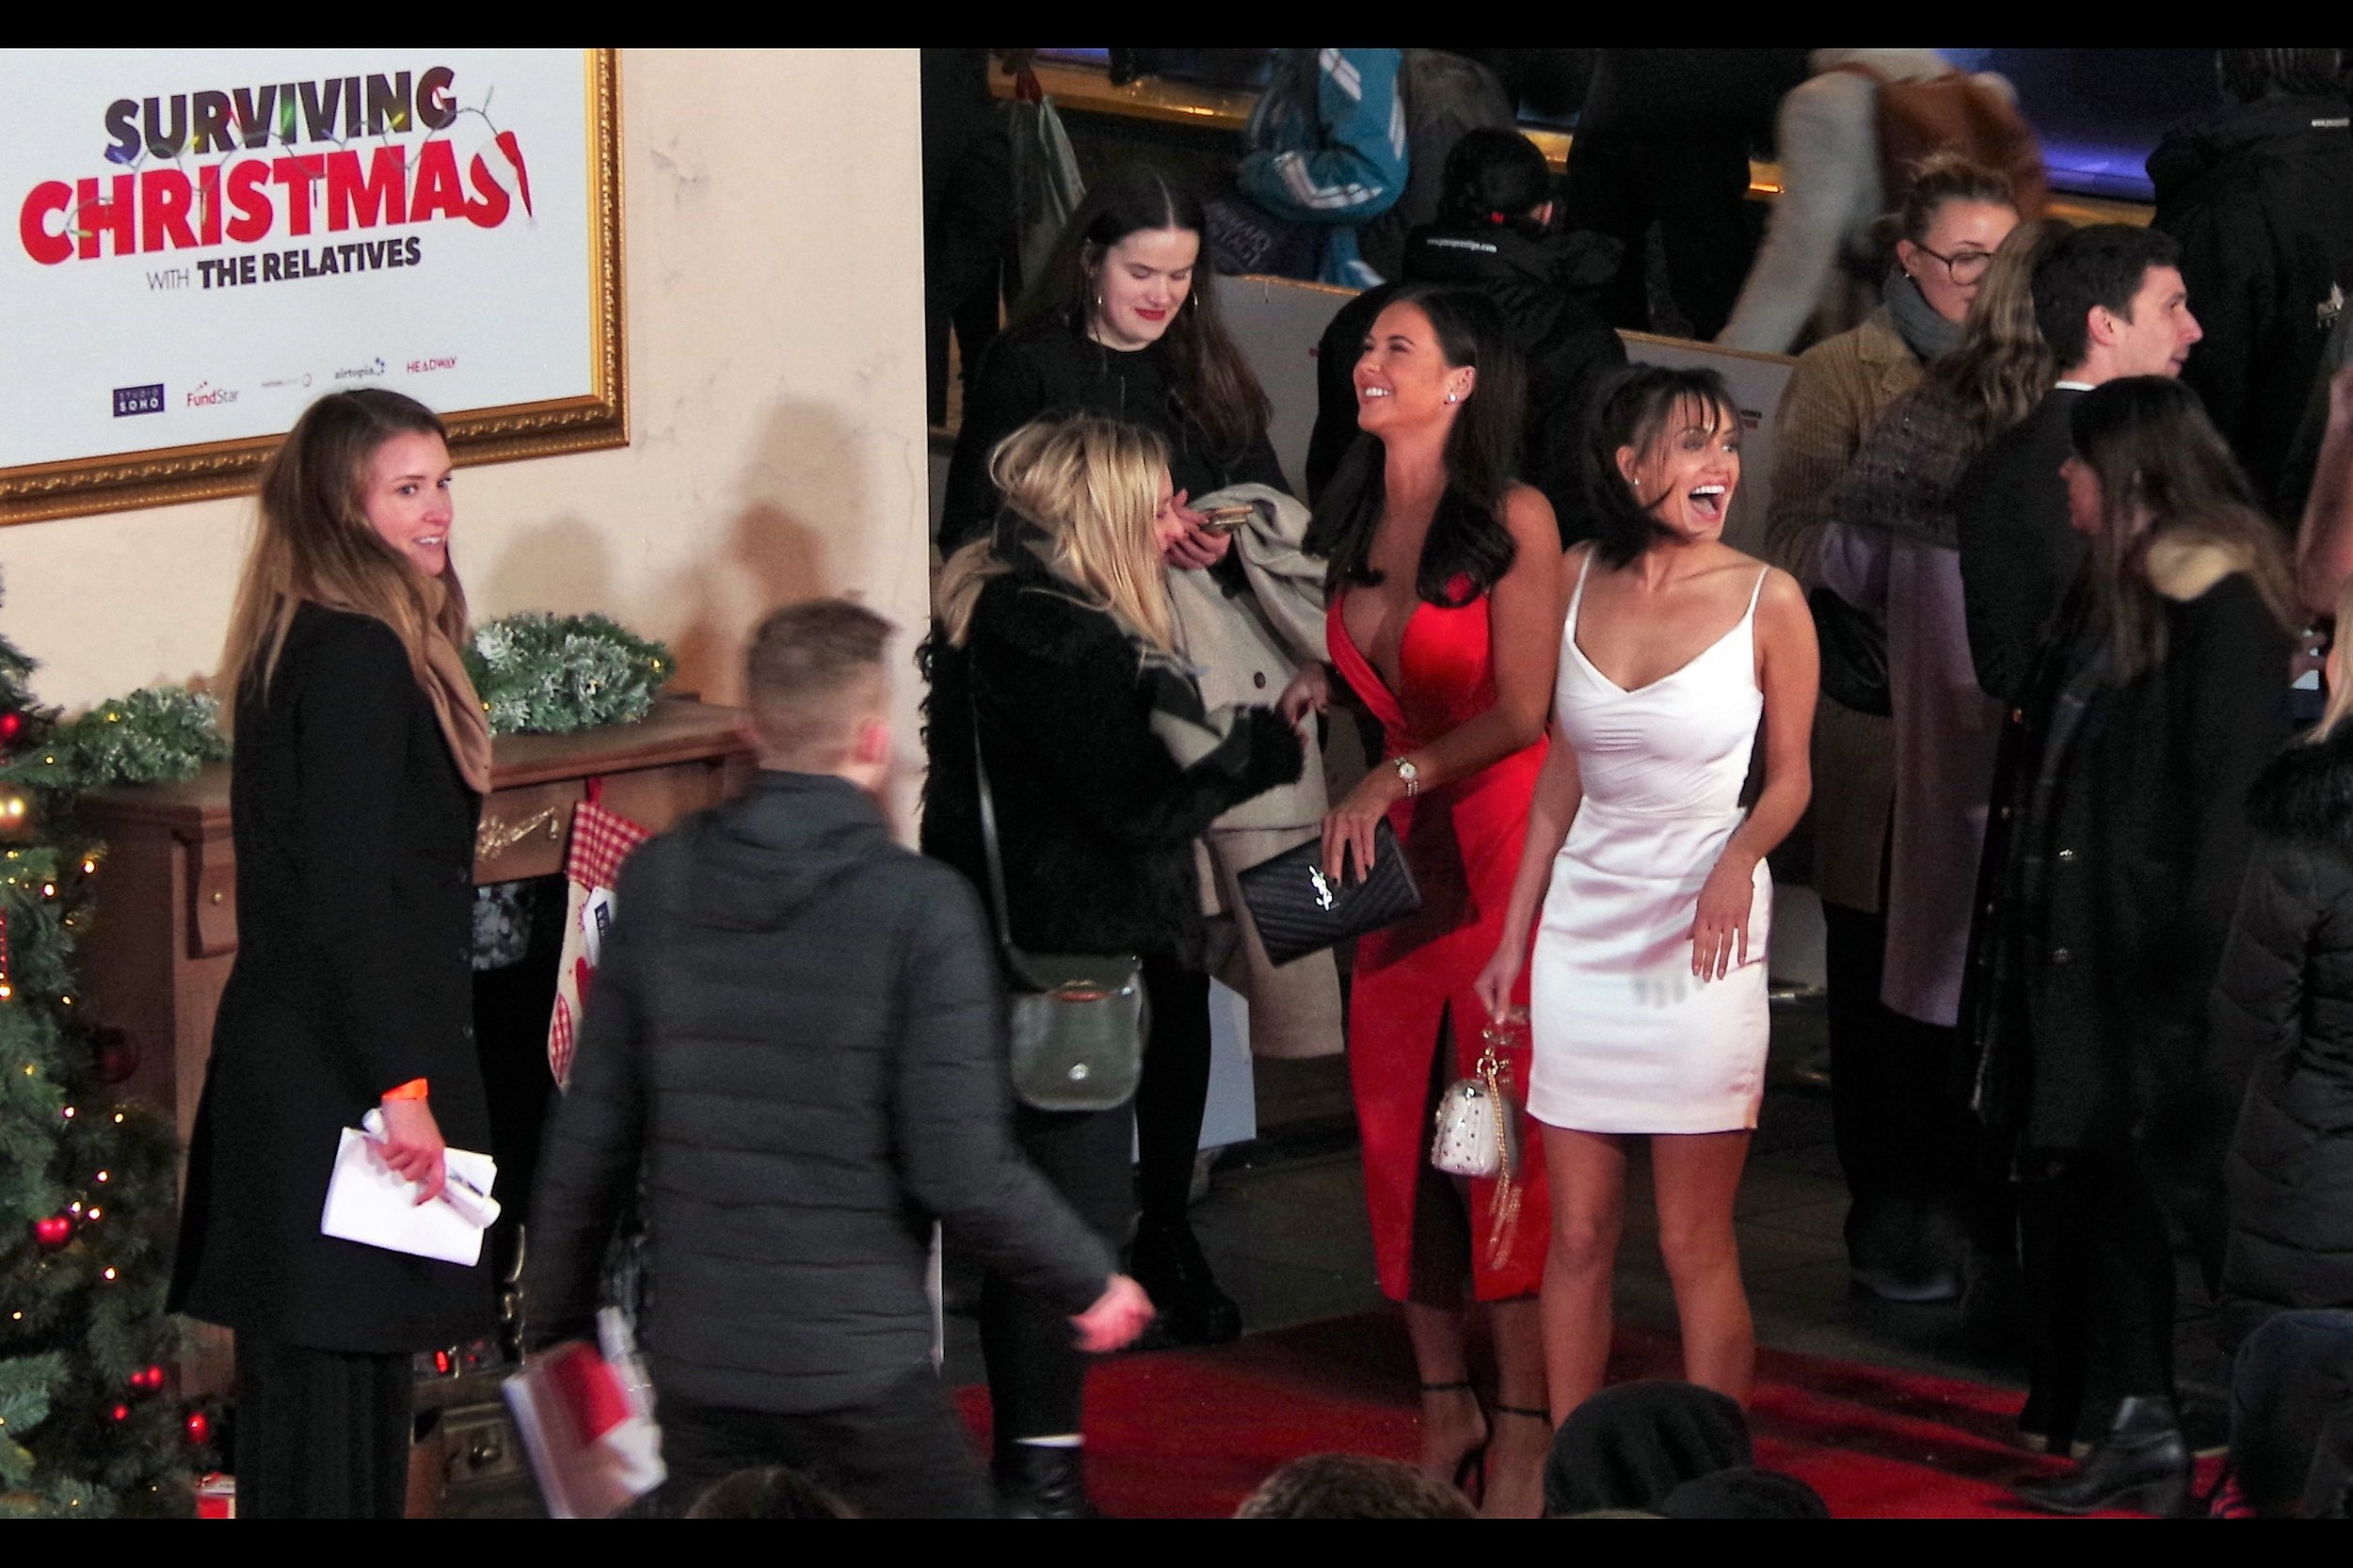 """She's wearing even less dress than I AM!!""  - yes, but wireimage identifies the red dress lady, not the white, as Shelby Tribble."